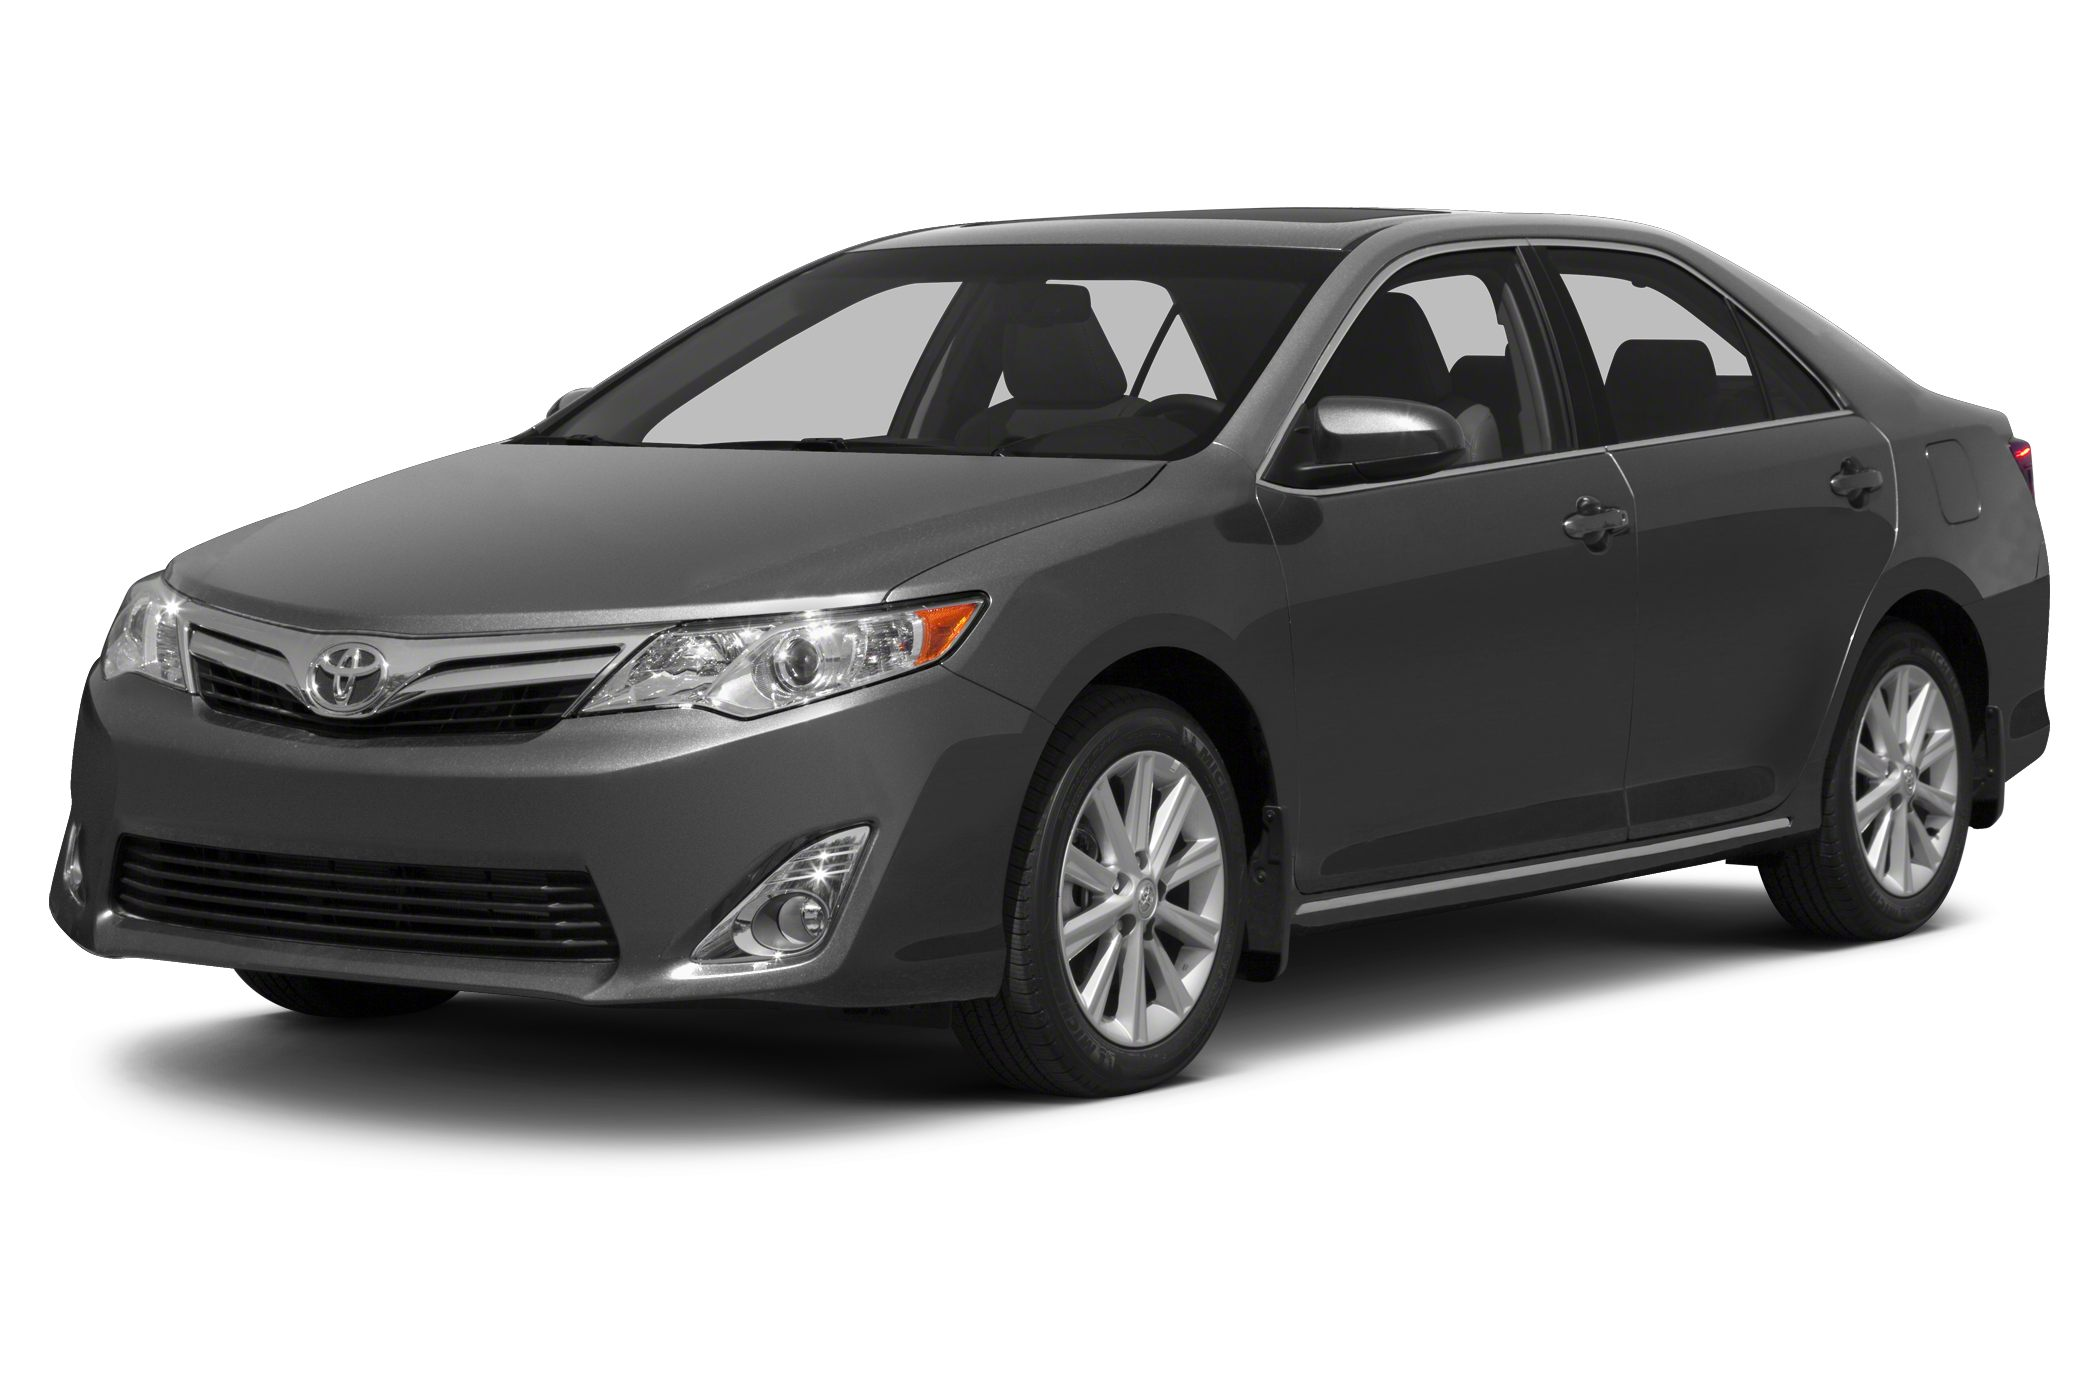 2013 Toyota Camry LE Sedan for sale in Paris for $13,987 with 39,337 miles.